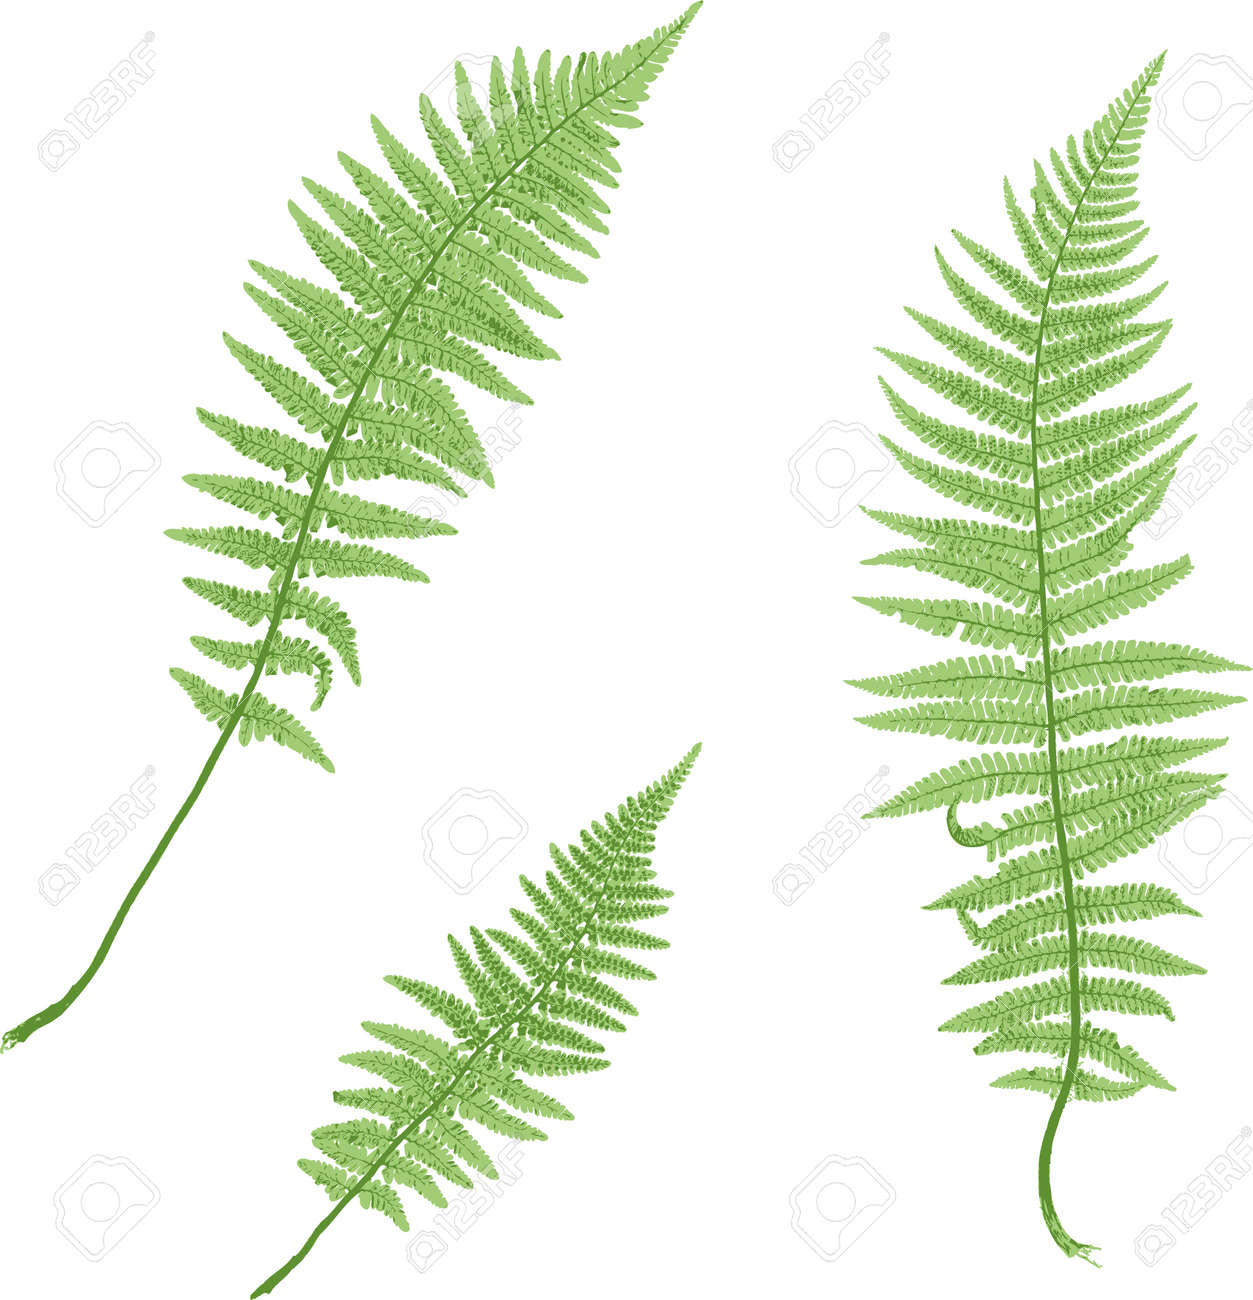 Fern isolated on white background. Stock Vector - 4540445